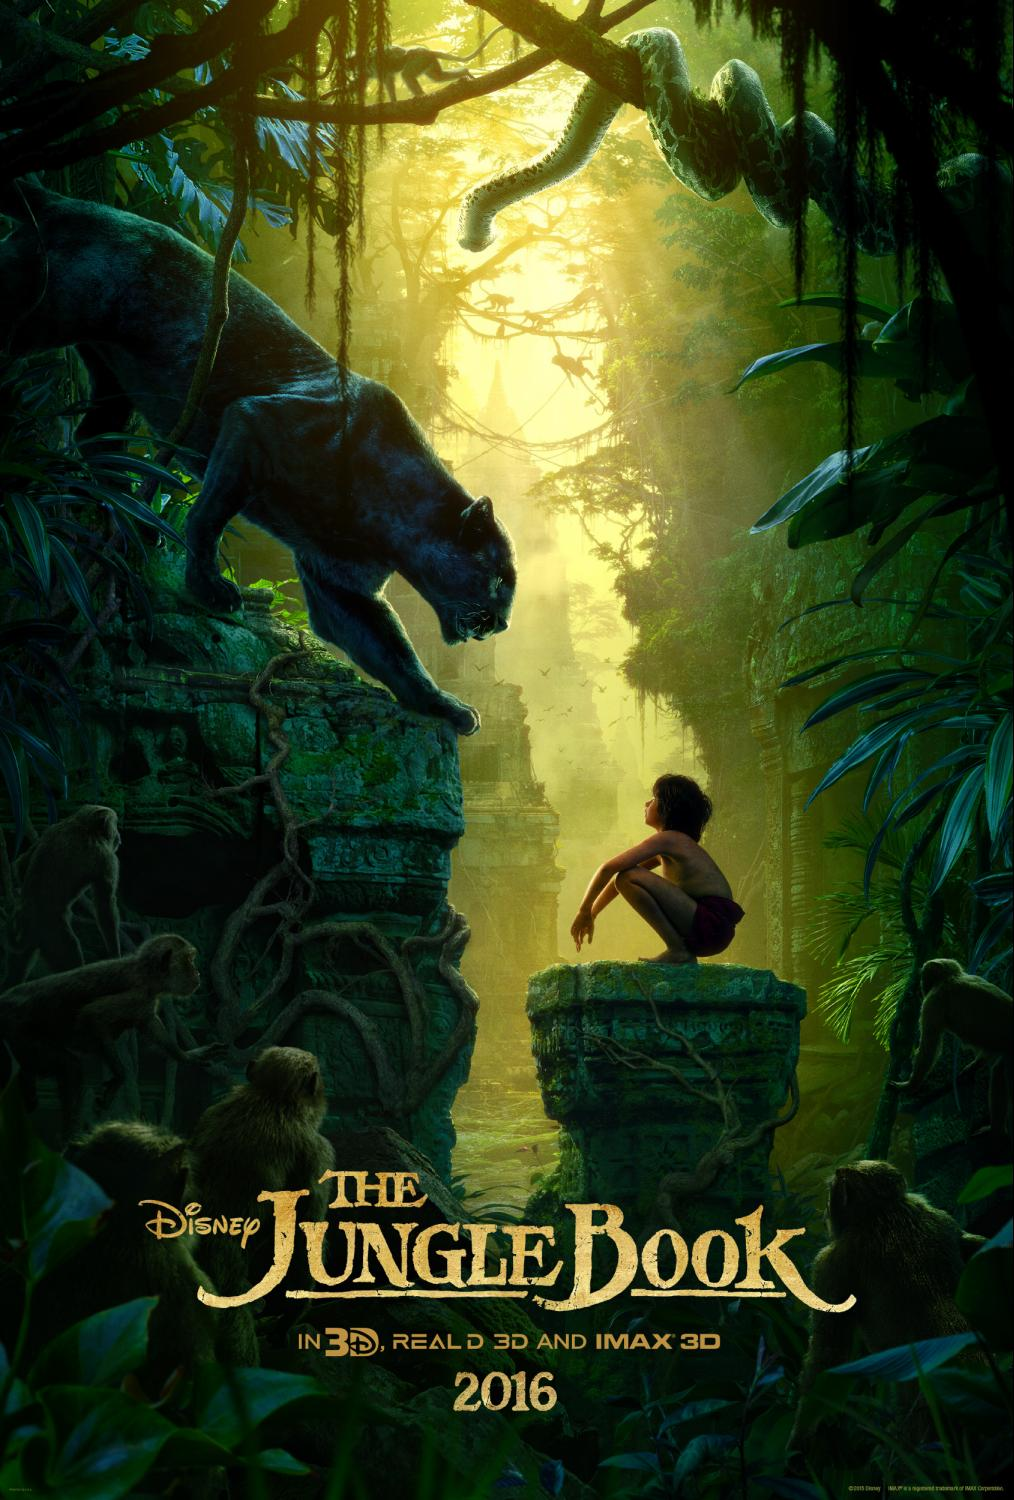 Disney's The Jungle New Clips and Featurette #JungleBookEvent